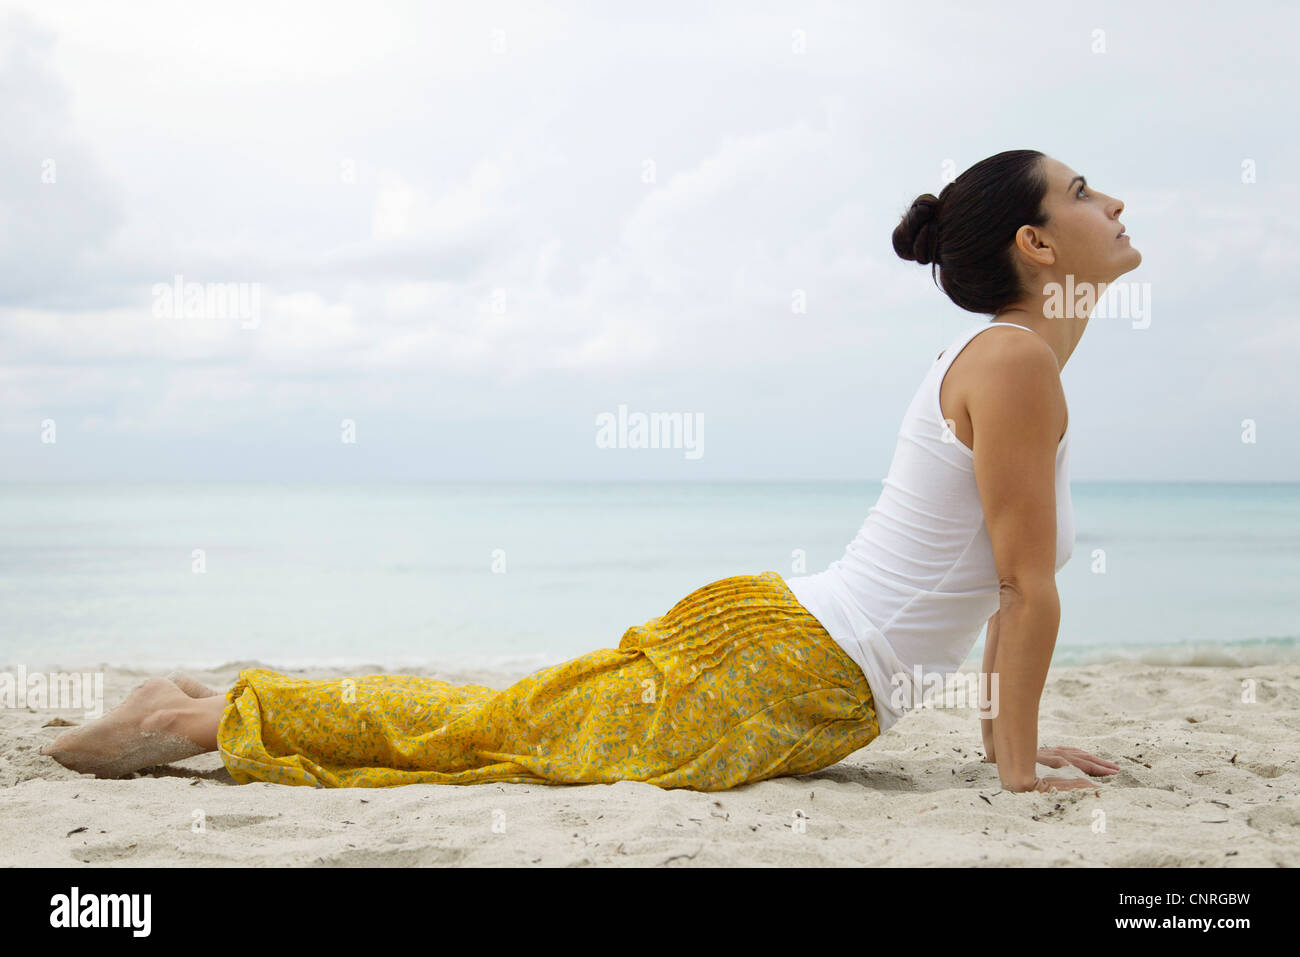 Mature woman in cobra pose on beach, side view - Stock Image